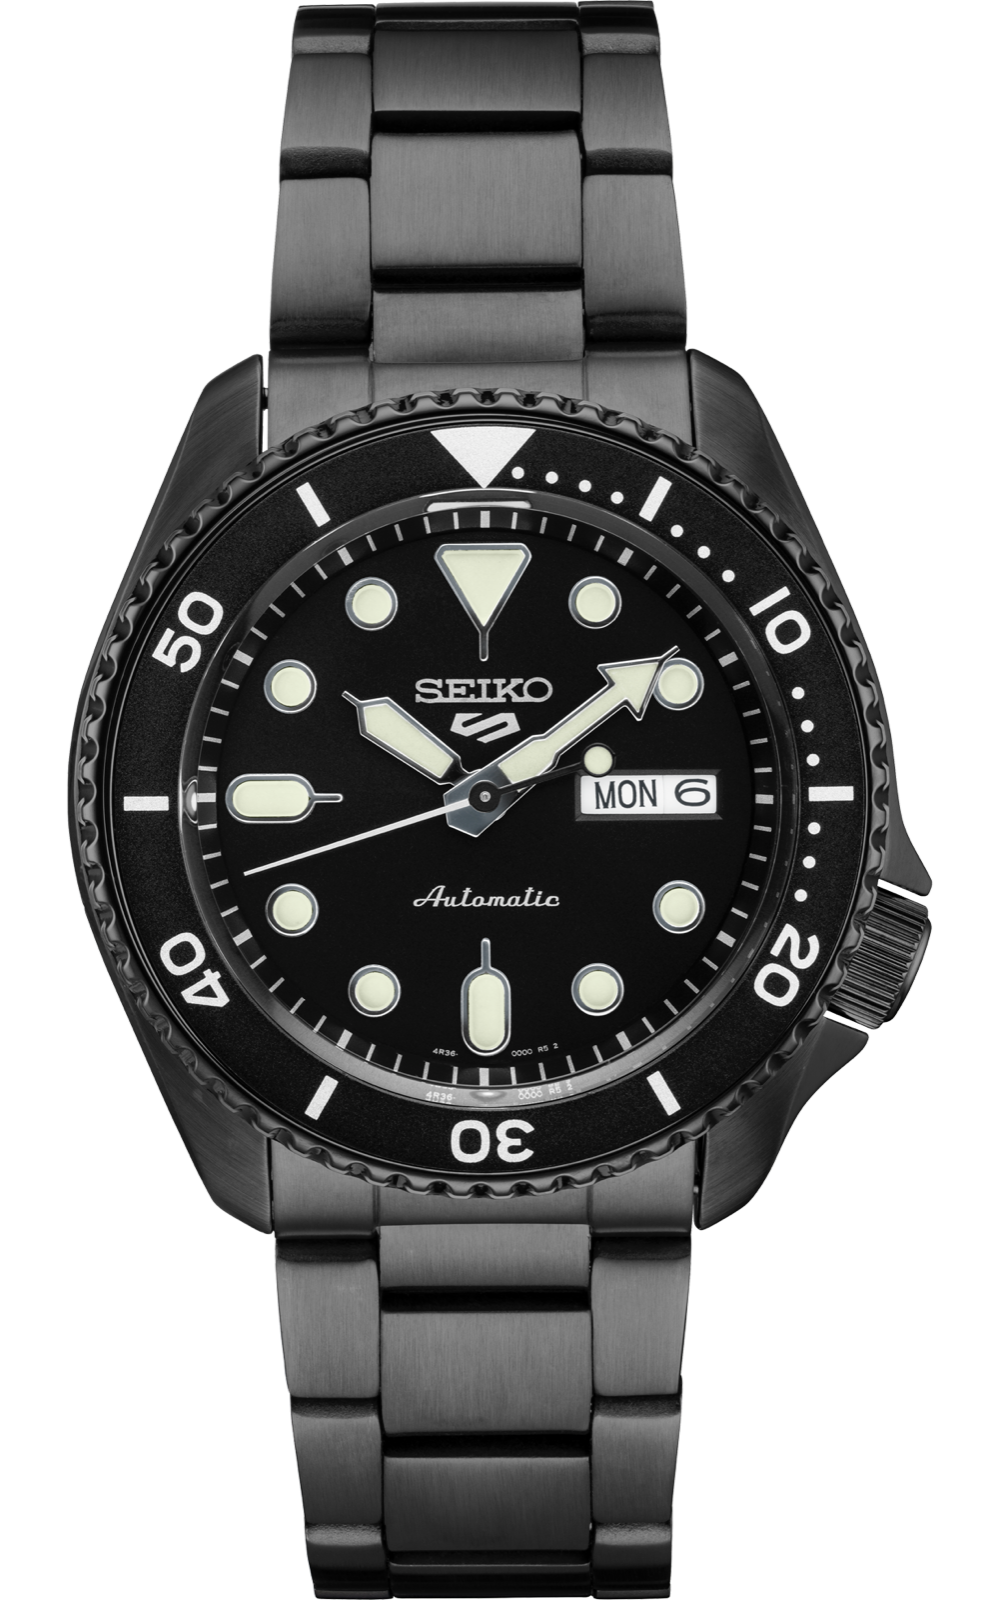 NEW SEIKO SRPD65 5 SPORT BLACK ION FINISH STAINLESS STEEL WATCH